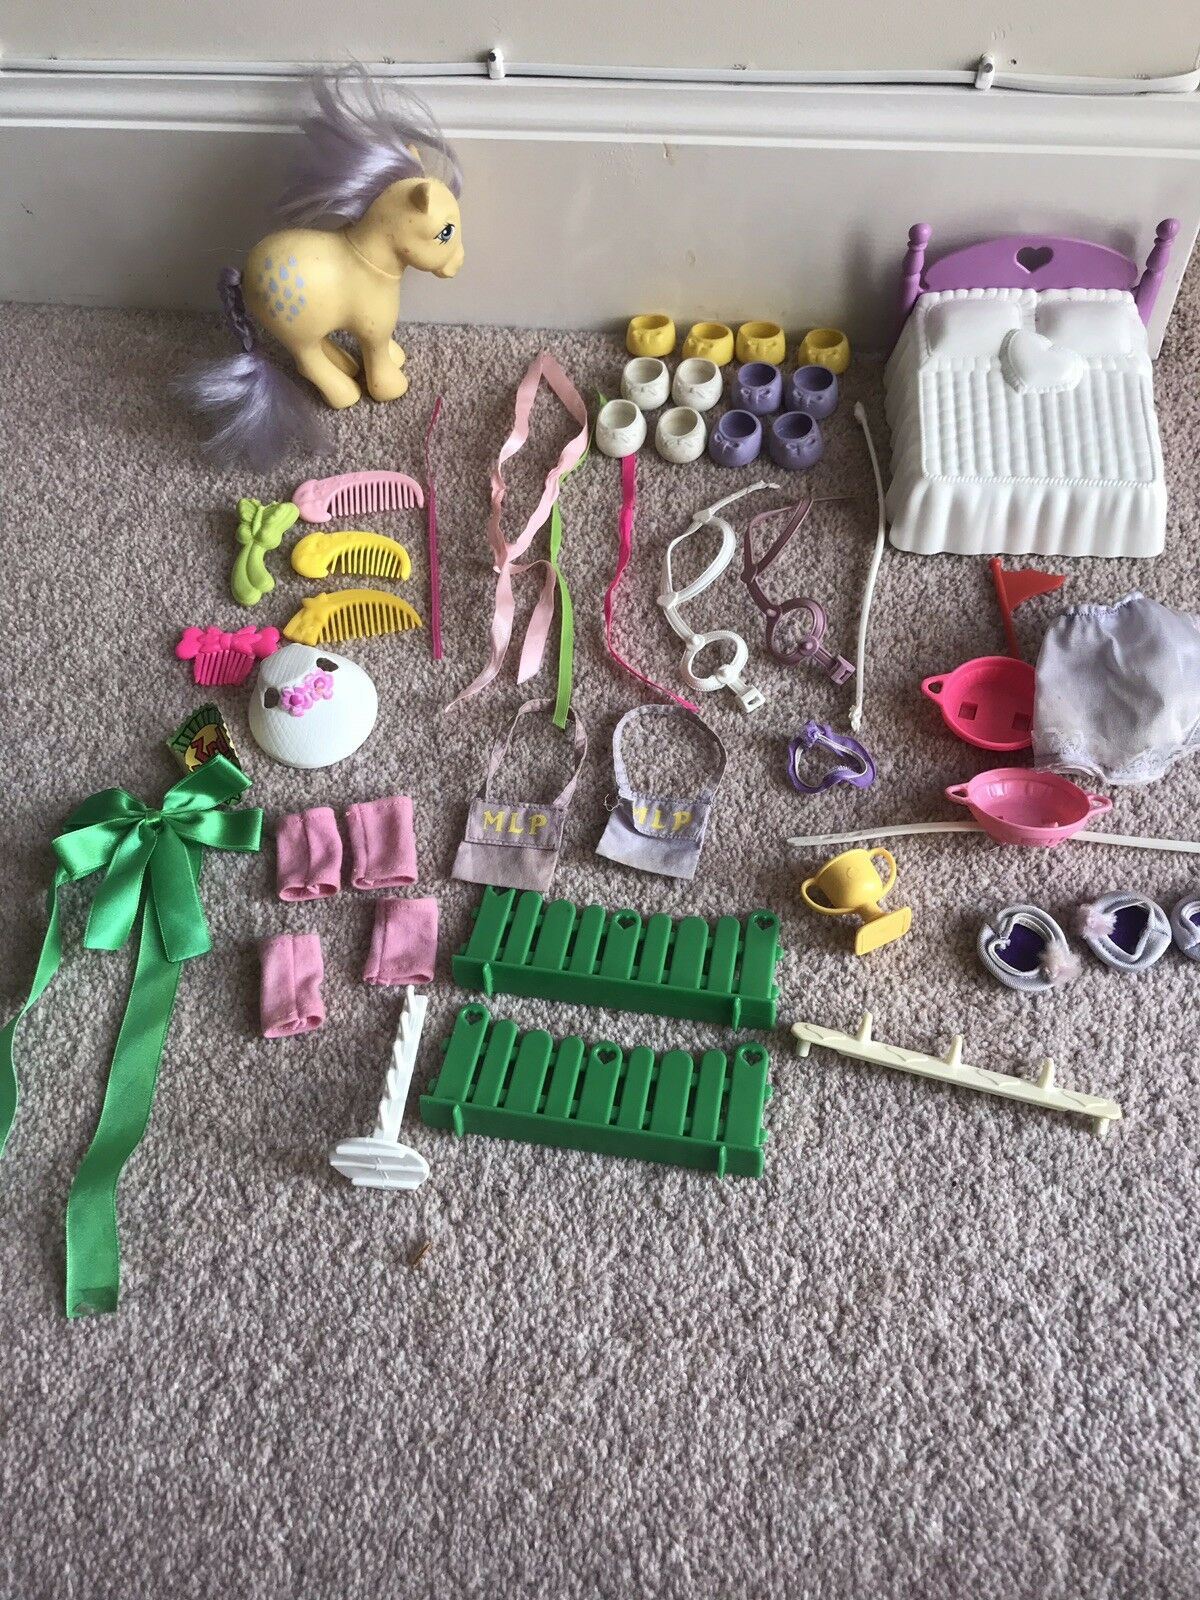 Vintage My Little Pony Accessories Show Stable Schuhes Ribbons Brushes Combs Hat